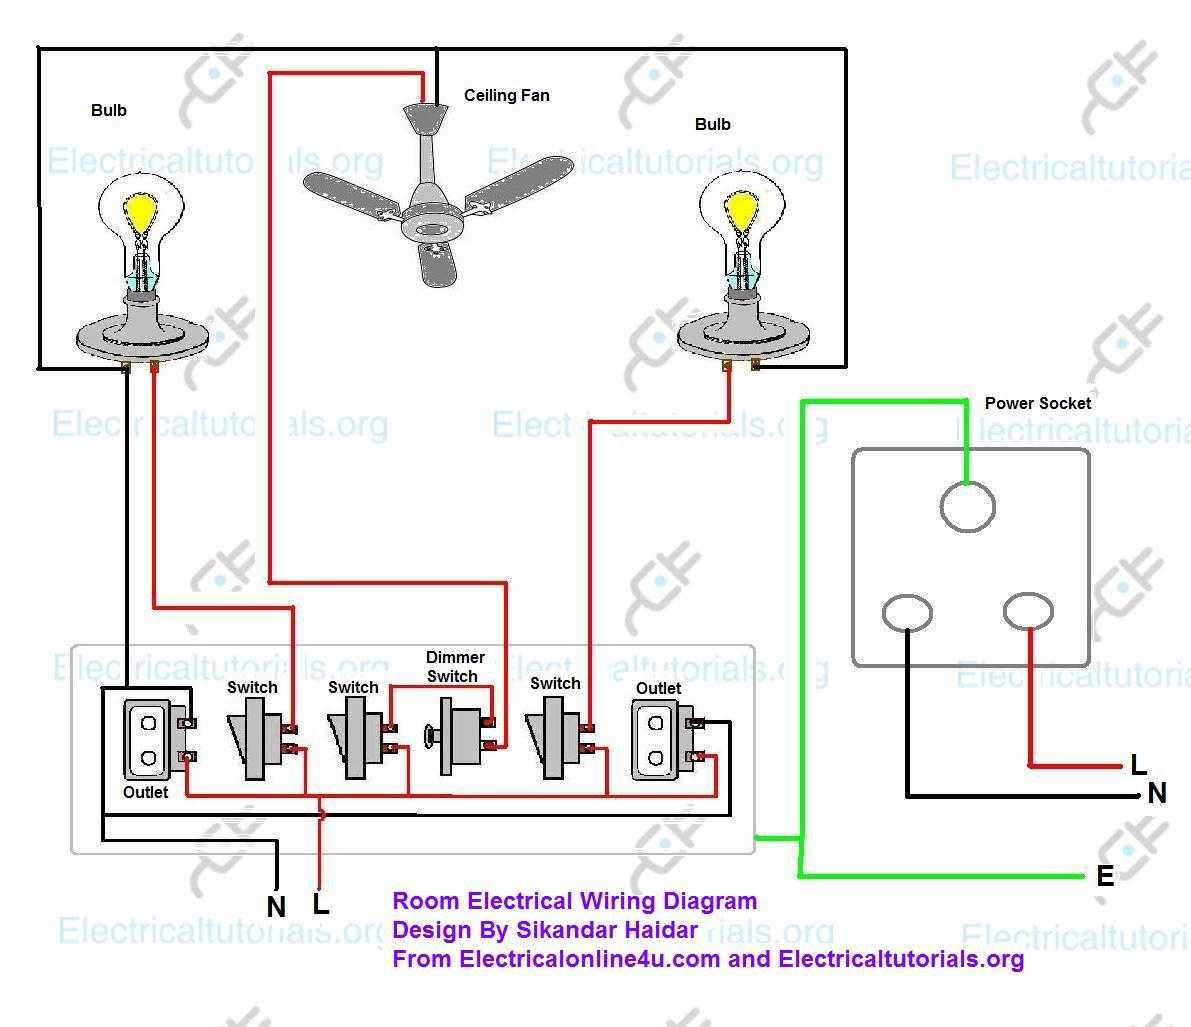 electric circuit drawing at getdrawings com free for personal use rh getdrawings com basic home wiring diagrams basic home wiring diagrams electrical